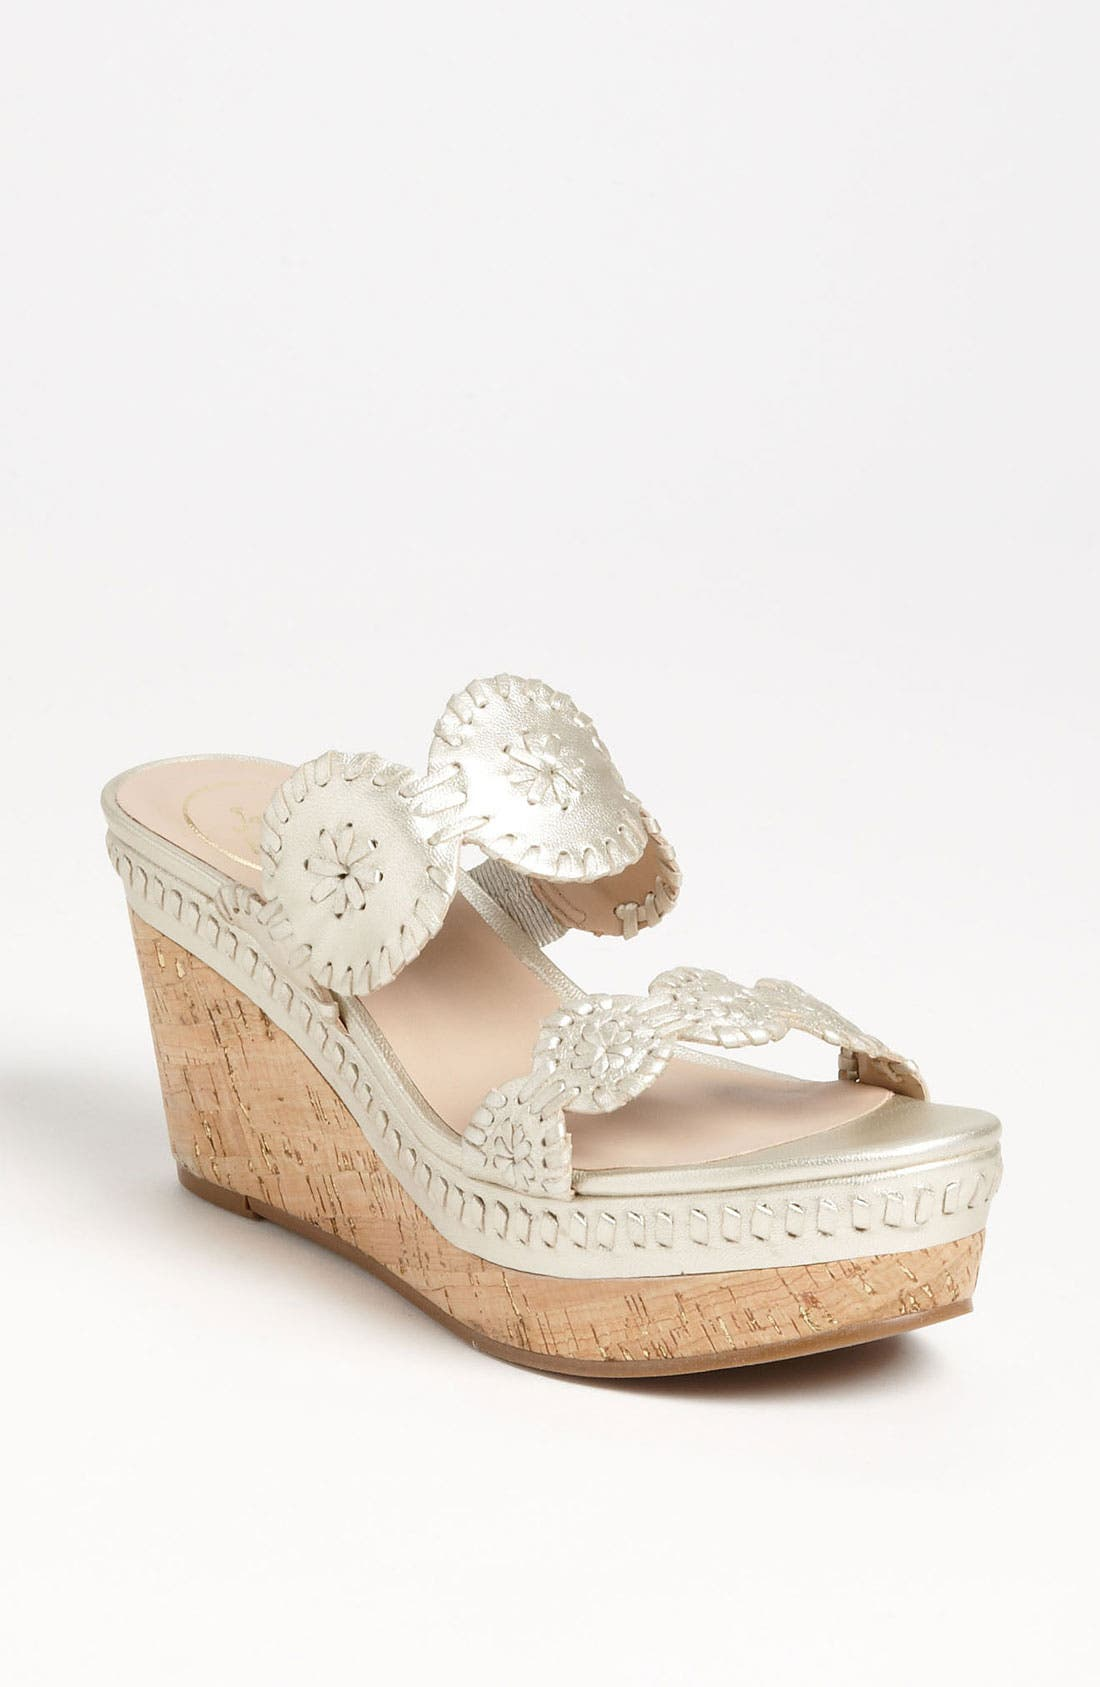 Alternate Image 1 Selected - Jack Rogers 'Munro' Sandal